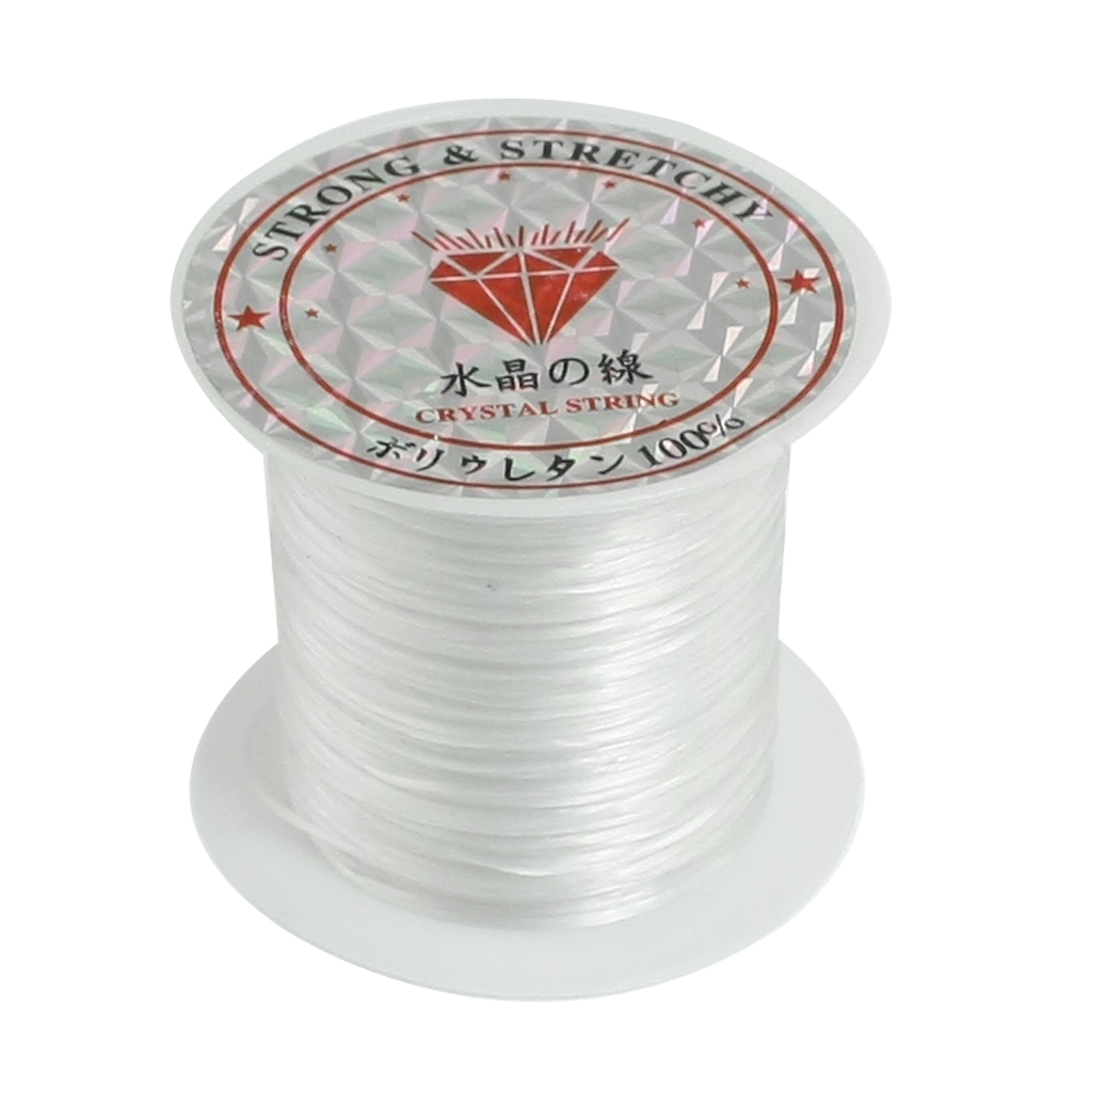 Pendant Jewelry Beading Thread Stretchy Crystal String Cord Spool White 9M